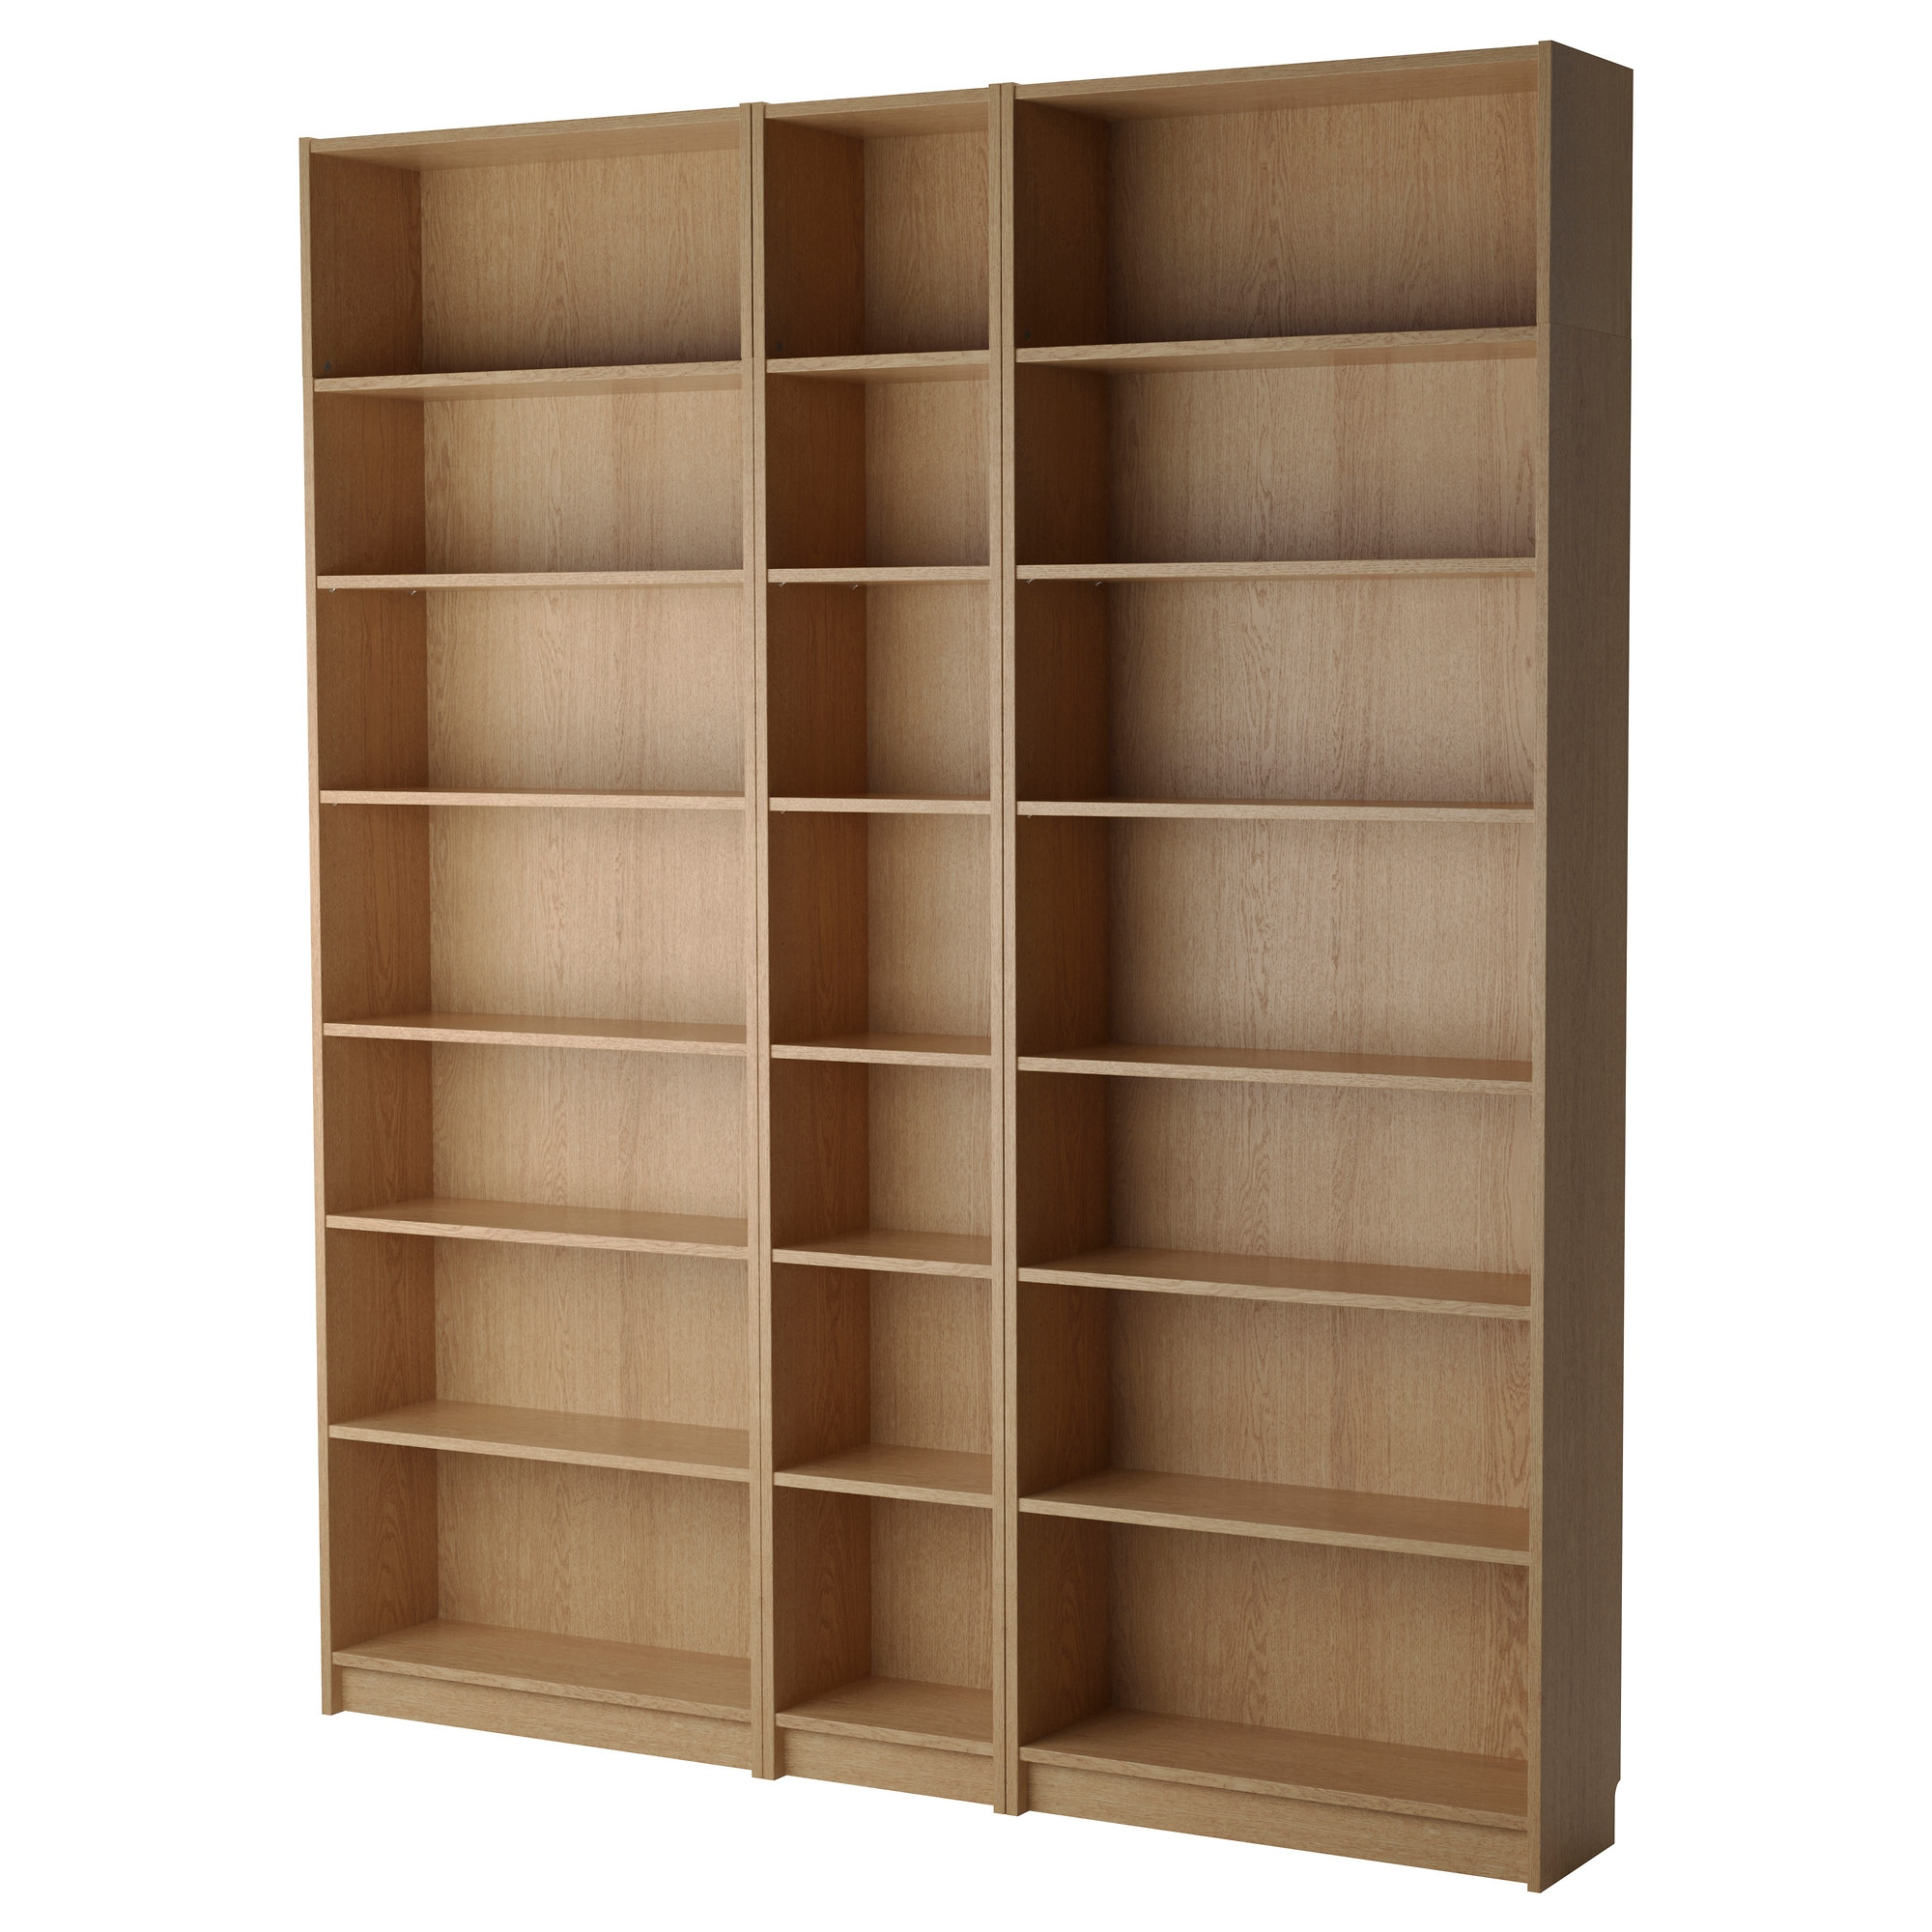 Meuble Bibliotheque Pdf - Billy Biblioth Que Plaqu Ch Ne Ikea[mjhdah]http://www.ikea.com/be/fr/images/products/billy-biblioth%C3%A8que-blanc__0252341_pe391168_s5.jpg